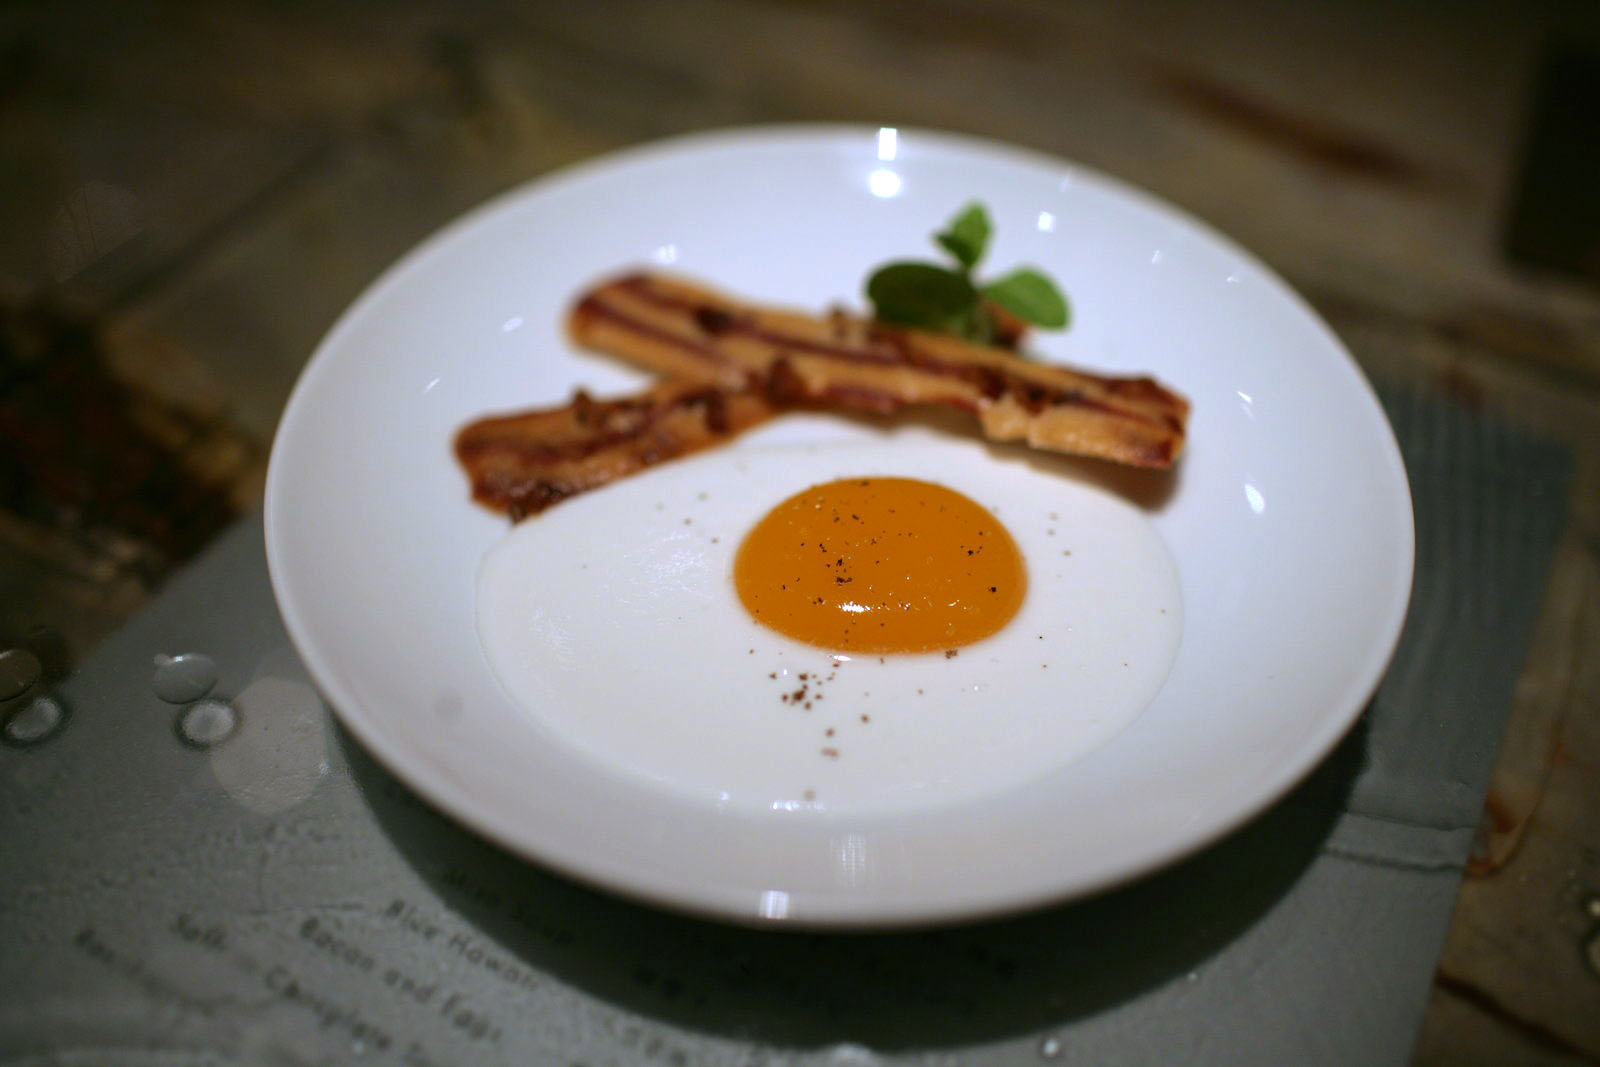 Tapas Molecular Bar - Bacon and Eggs